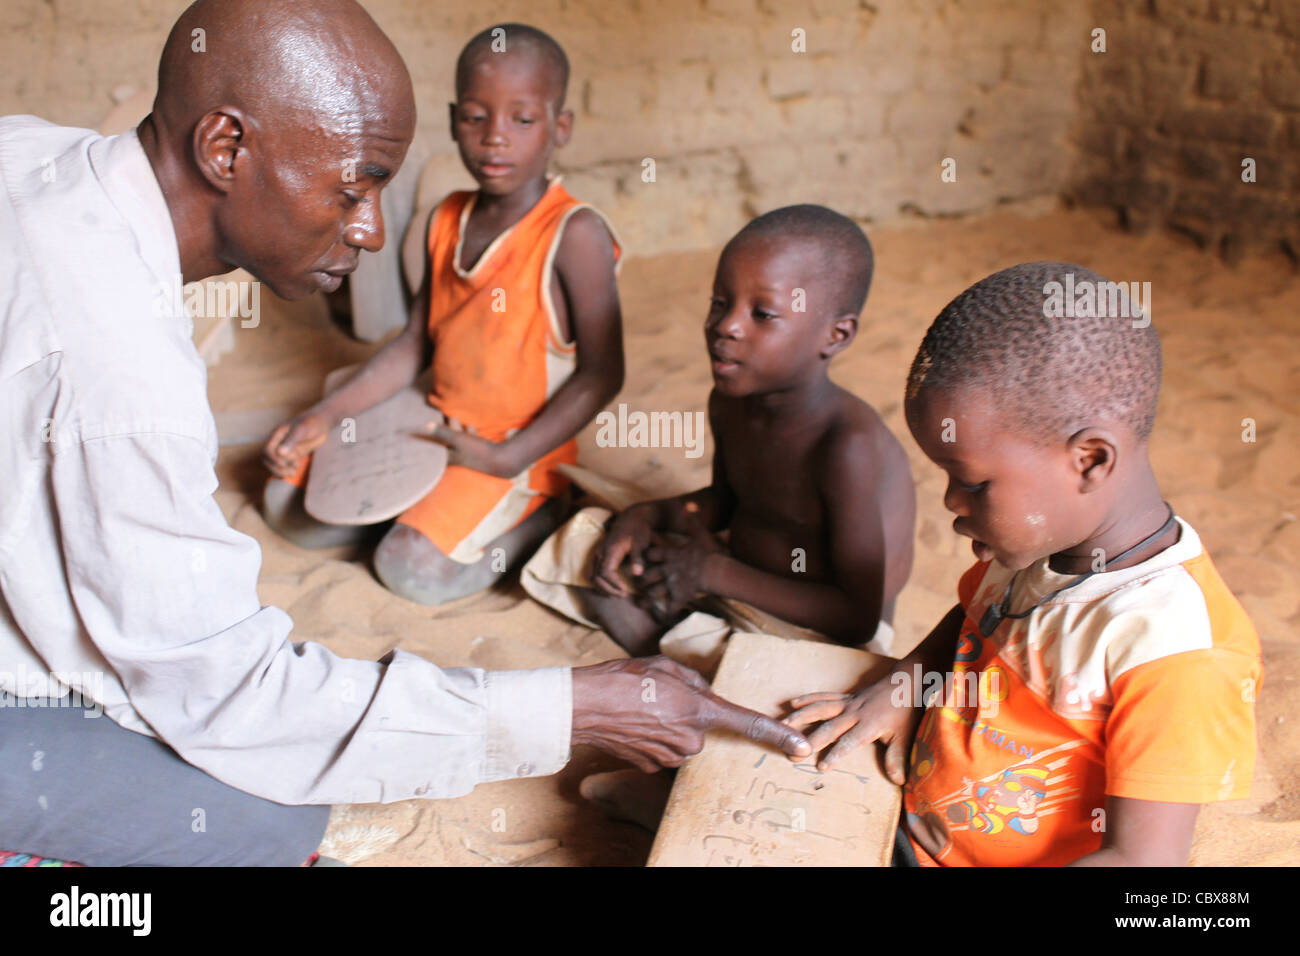 Young boys in a koran school in Djenne, Mali, west Africa - Stock Image